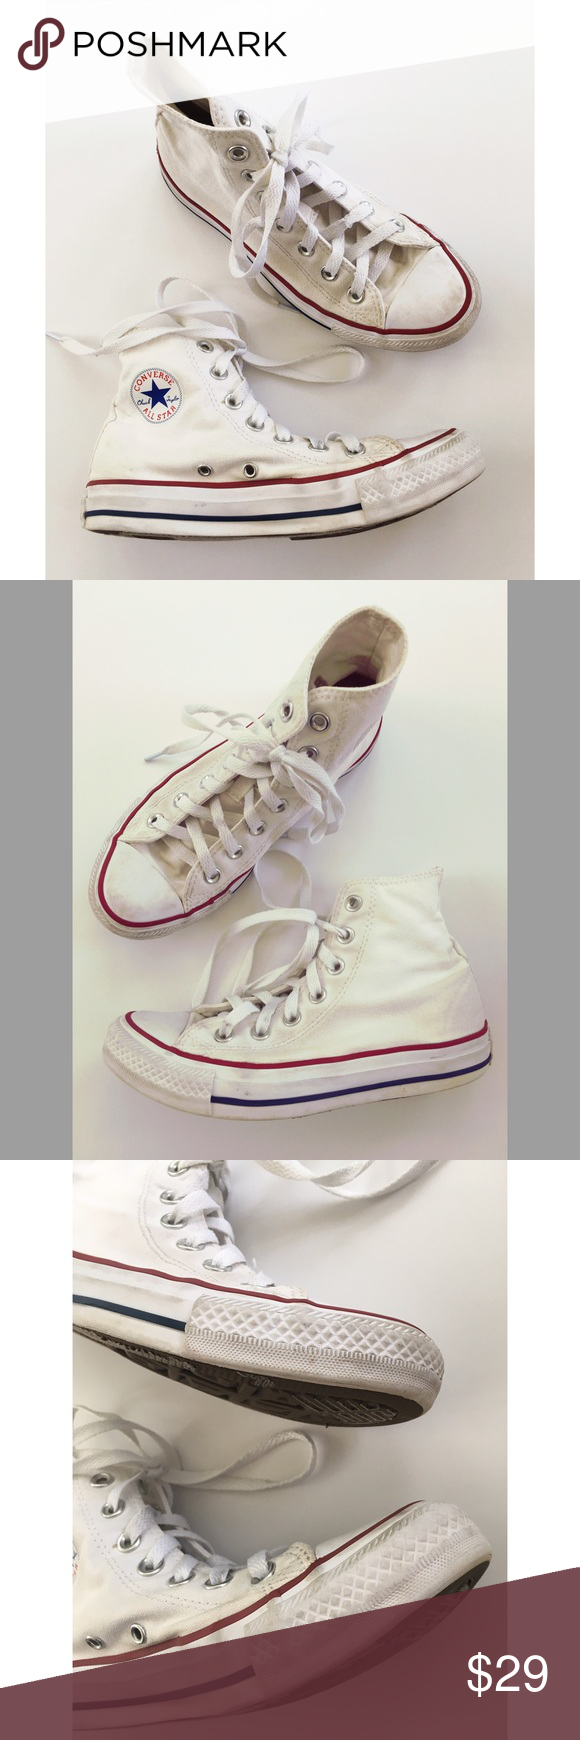 8355e5d8e232 White converse size 6 high tops sneakers men s 4 There are some scuffs and dirty  spots